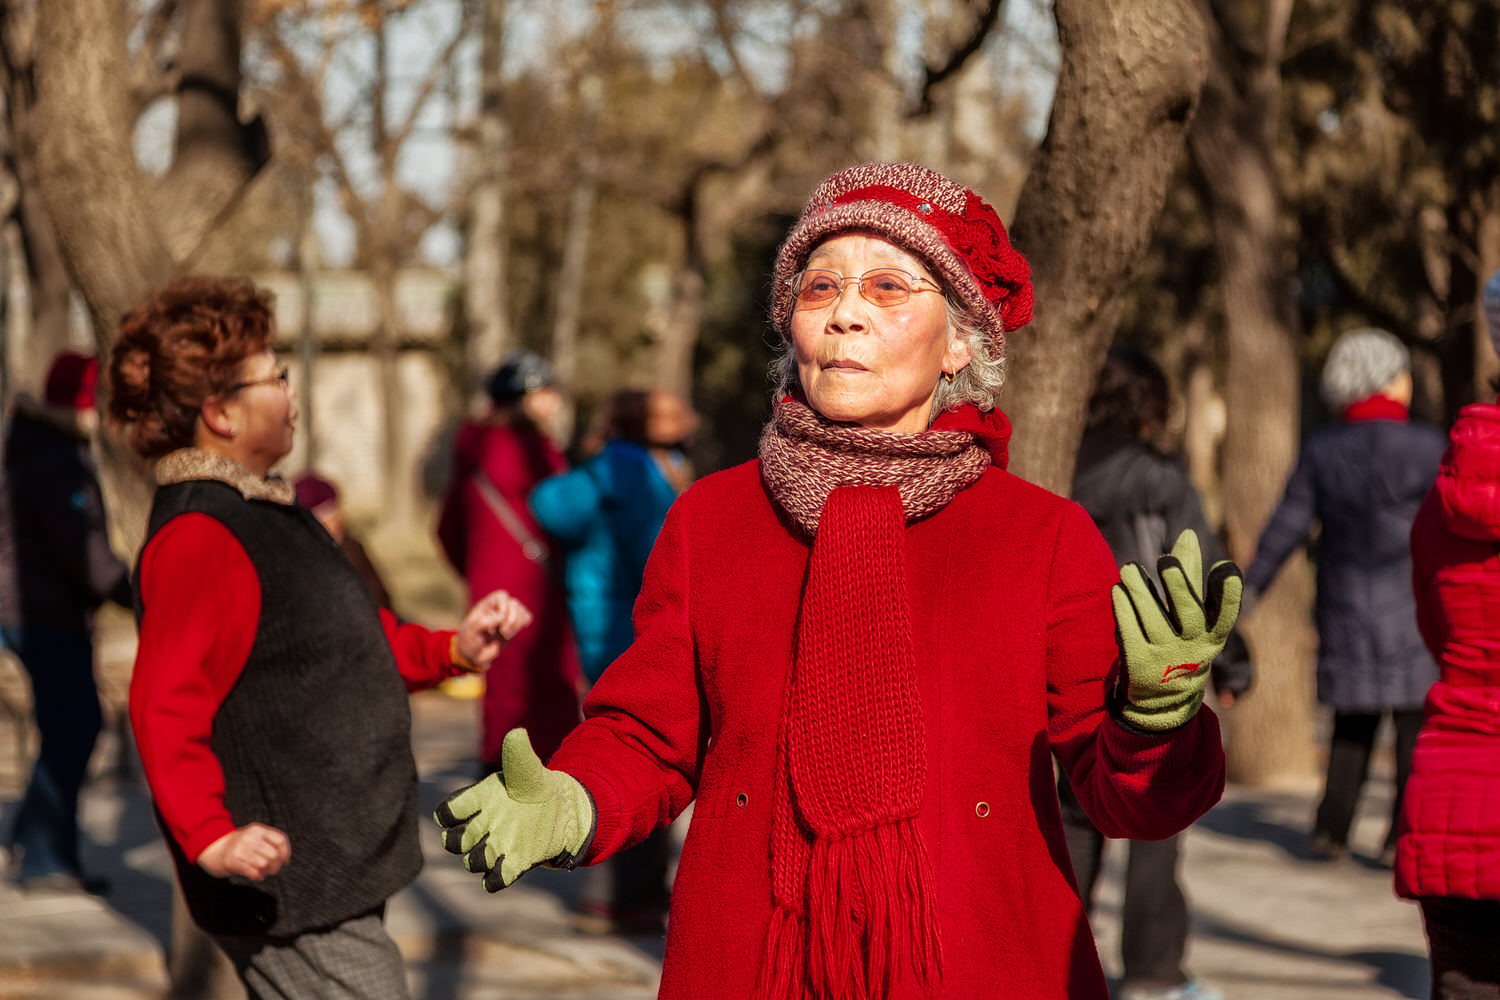 A group of    elderly women dancing    in the grounds of the    Temple Of Heaven   , on a winter's day, in    Beijing, China   . Selective Focus separates the primary subject from the other woman in this photo.